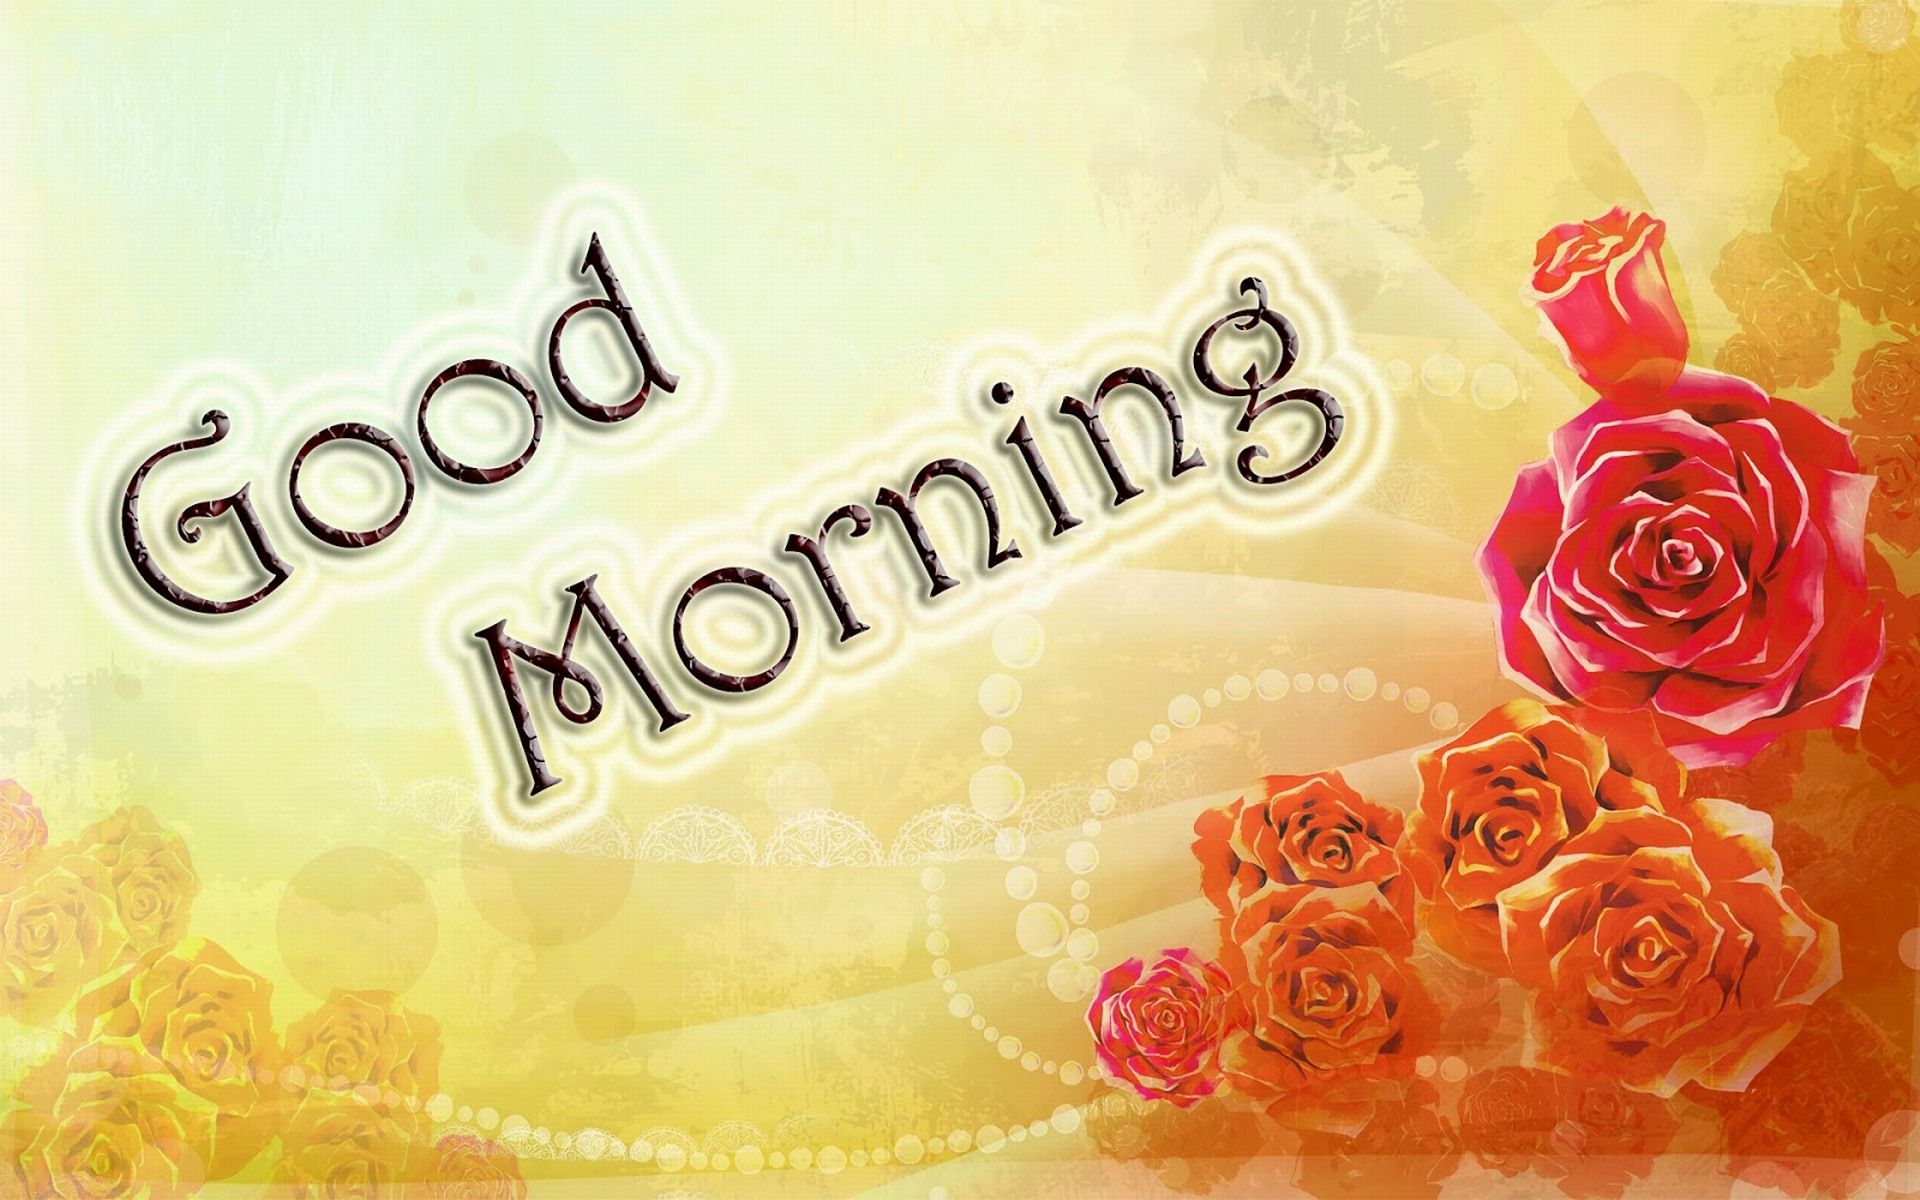 stylish Good Morning HD Wallpapers in English  Hindi  HD Walls 1920x1200